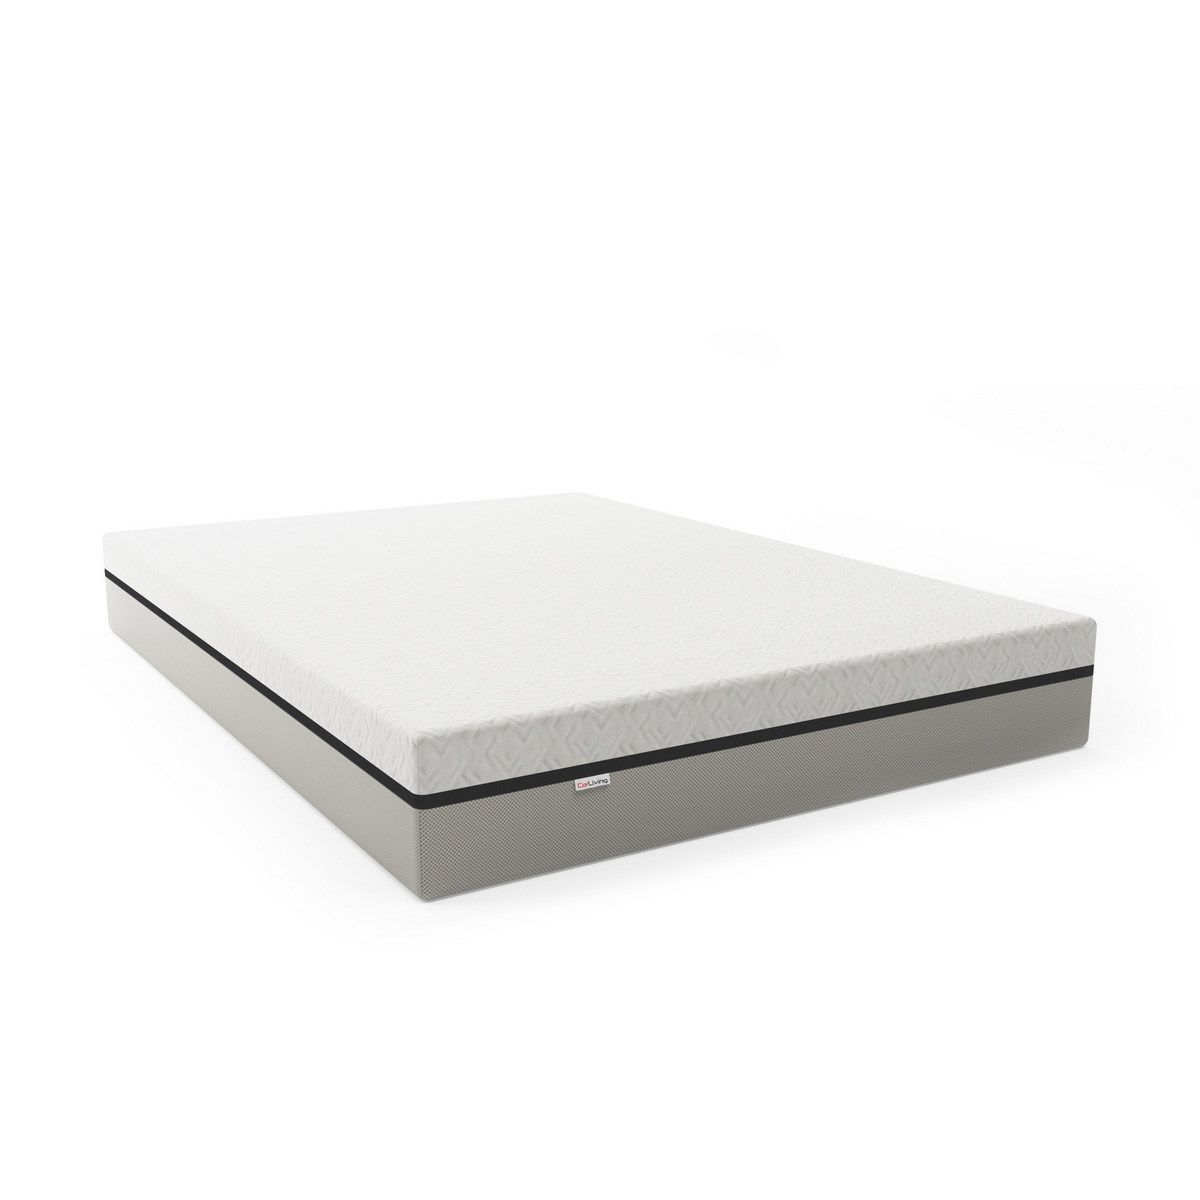 CorLiving SGH-616-D Sleep Collection Deluxe 10